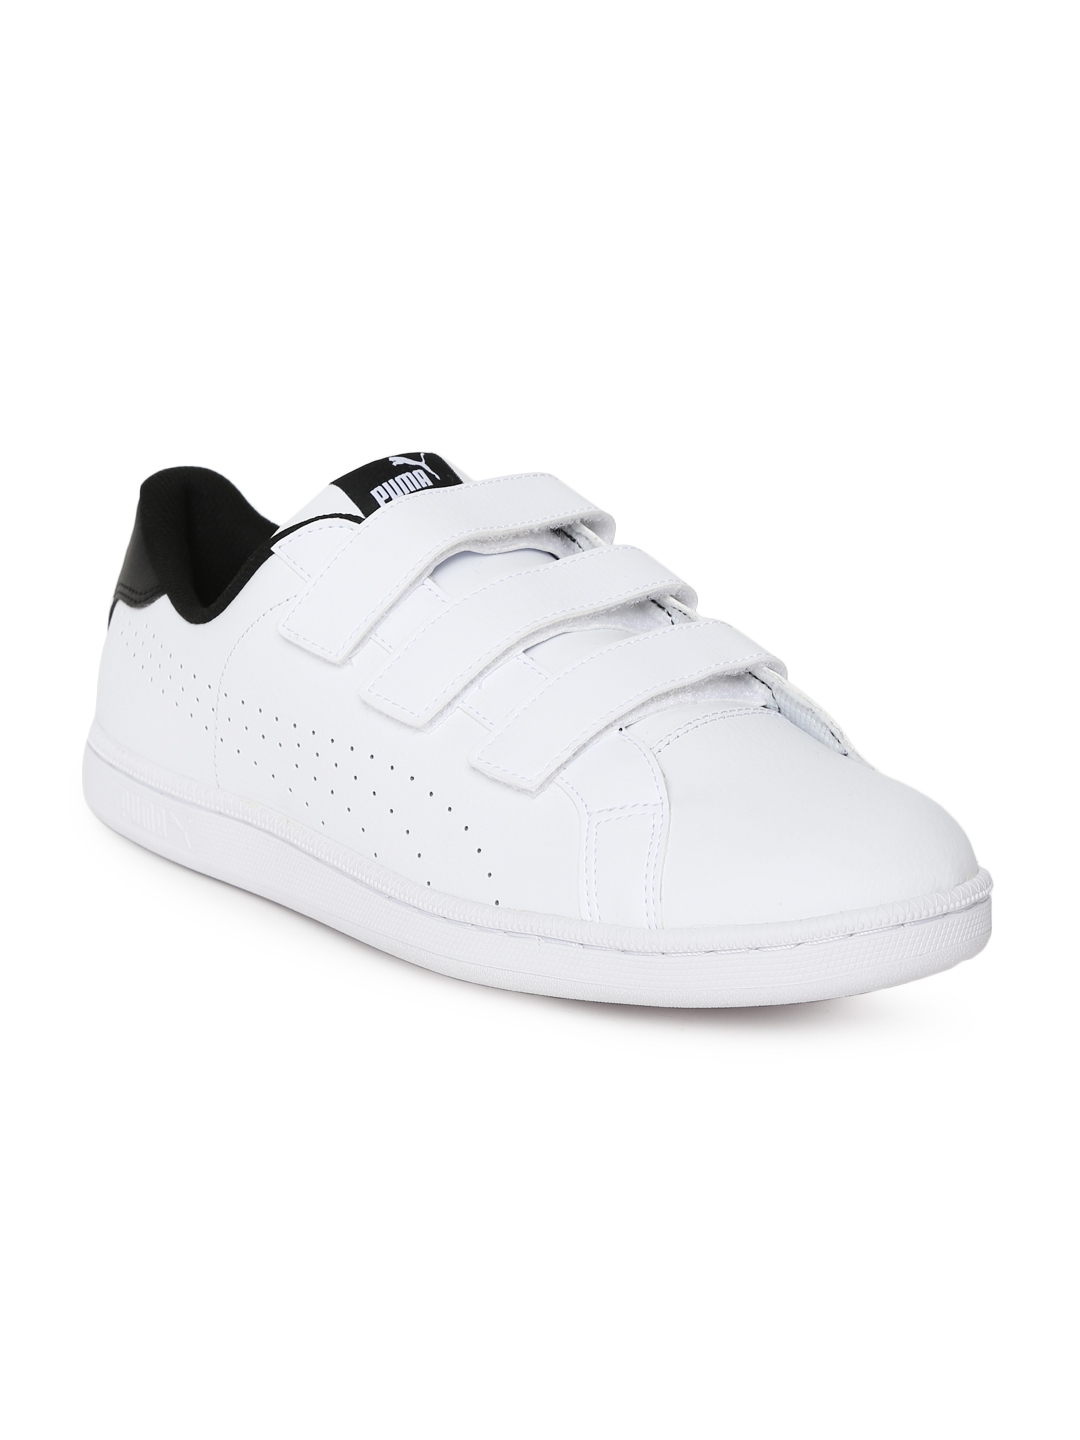 cc79ccf836a5 Buy Puma Men White Smash Velcro IDP Leather Sneakers - Casual Shoes ...